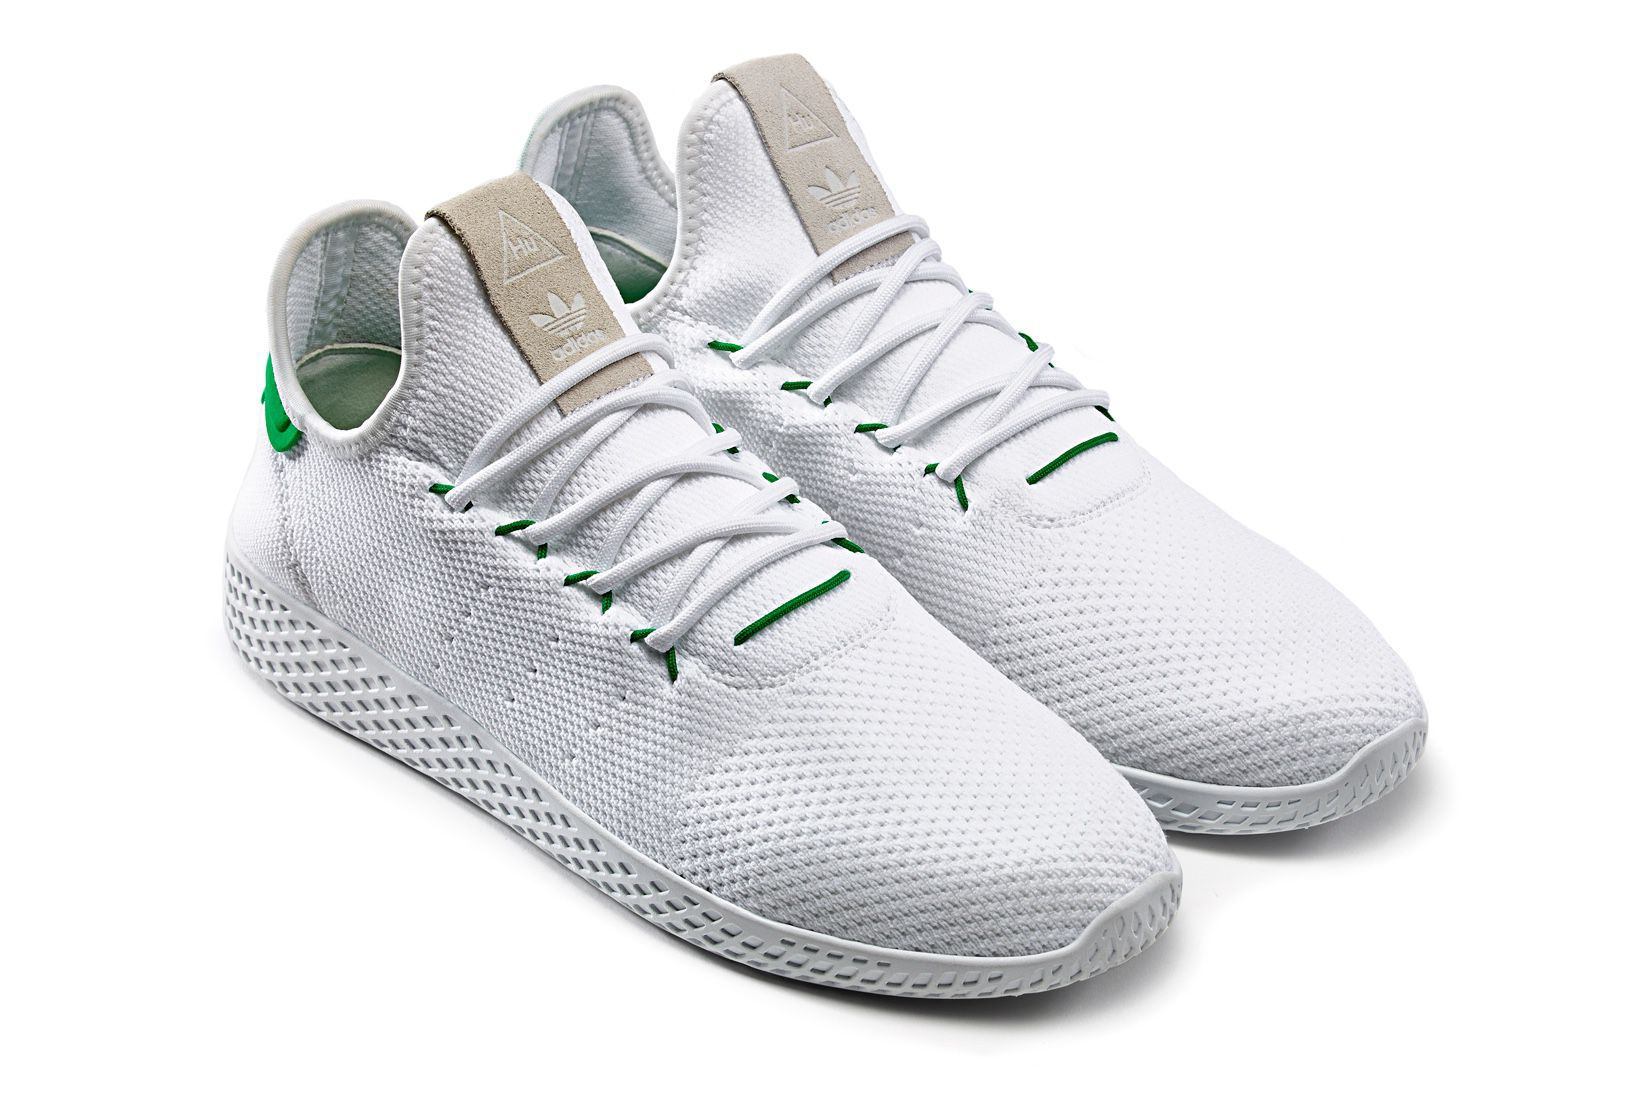 927450009c5c2 Adidas pharrell williams White Running Shoes Adidas pharrell williams White  Running Shoes ...